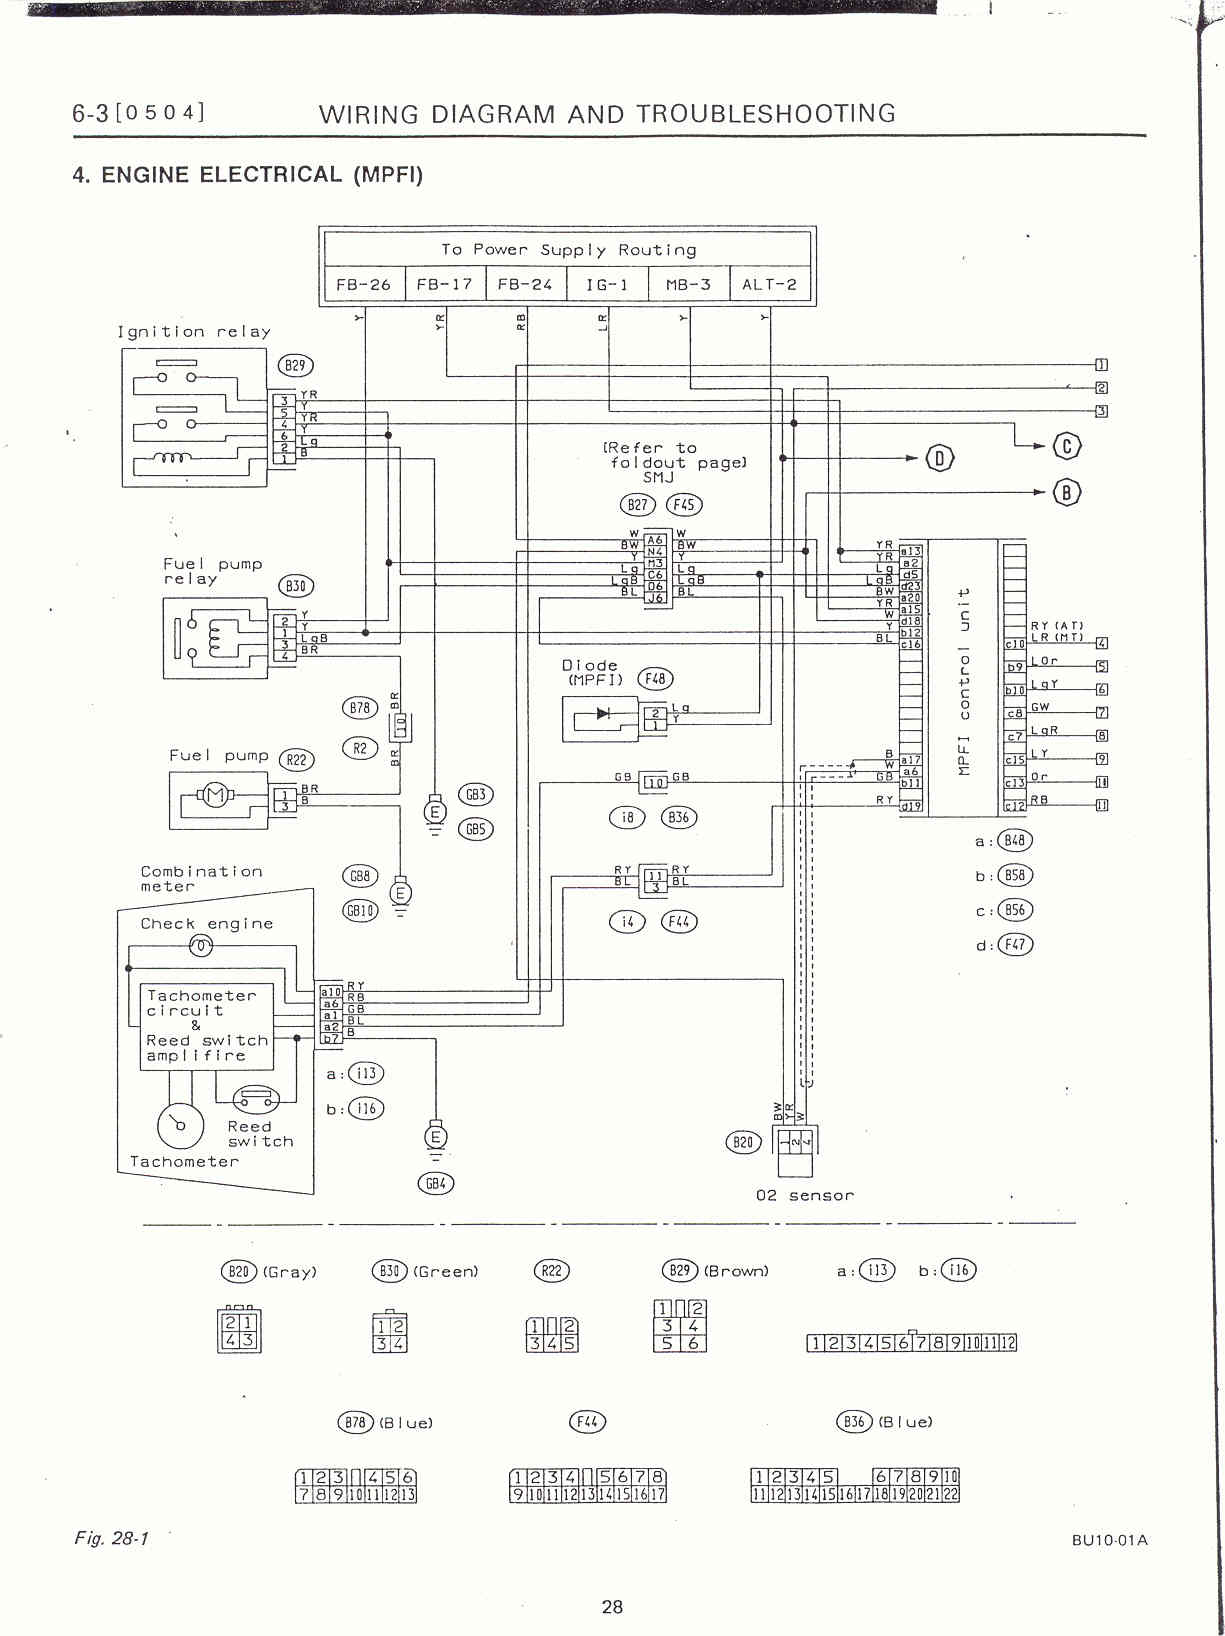 Surrealmirage Subaru Legacy Swap Electrical Info Notes. Engine Electrical Page 1. Subaru. 2003 Subaru Forester Ignition Wiring Diagram At Scoala.co